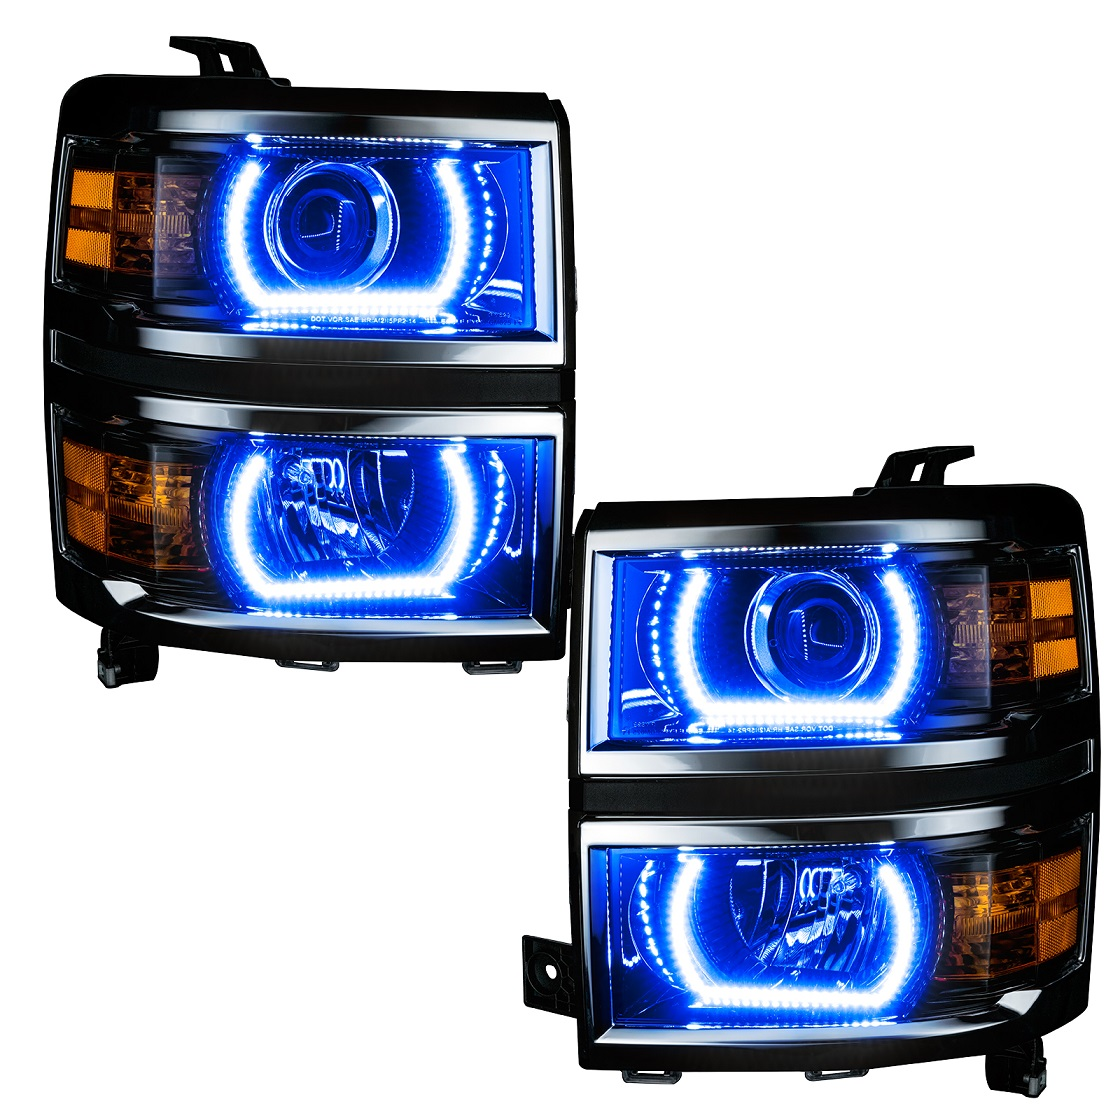 Oracle Color Changing Headlight and Foglight Halo Kits for